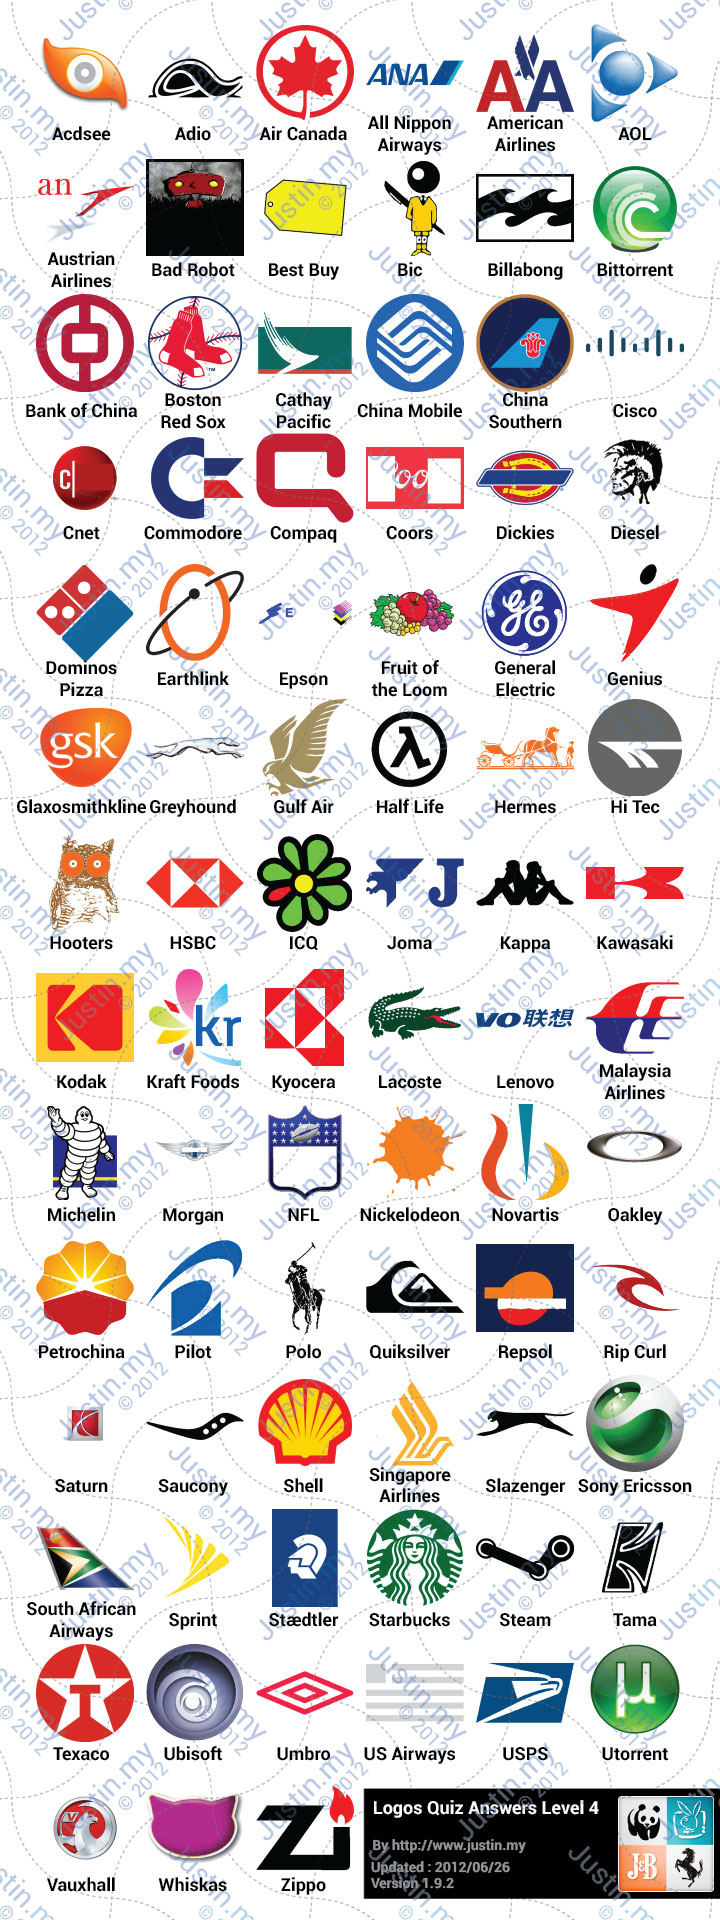 Logo Quiz Level 4 Answers With Pictures Quiz